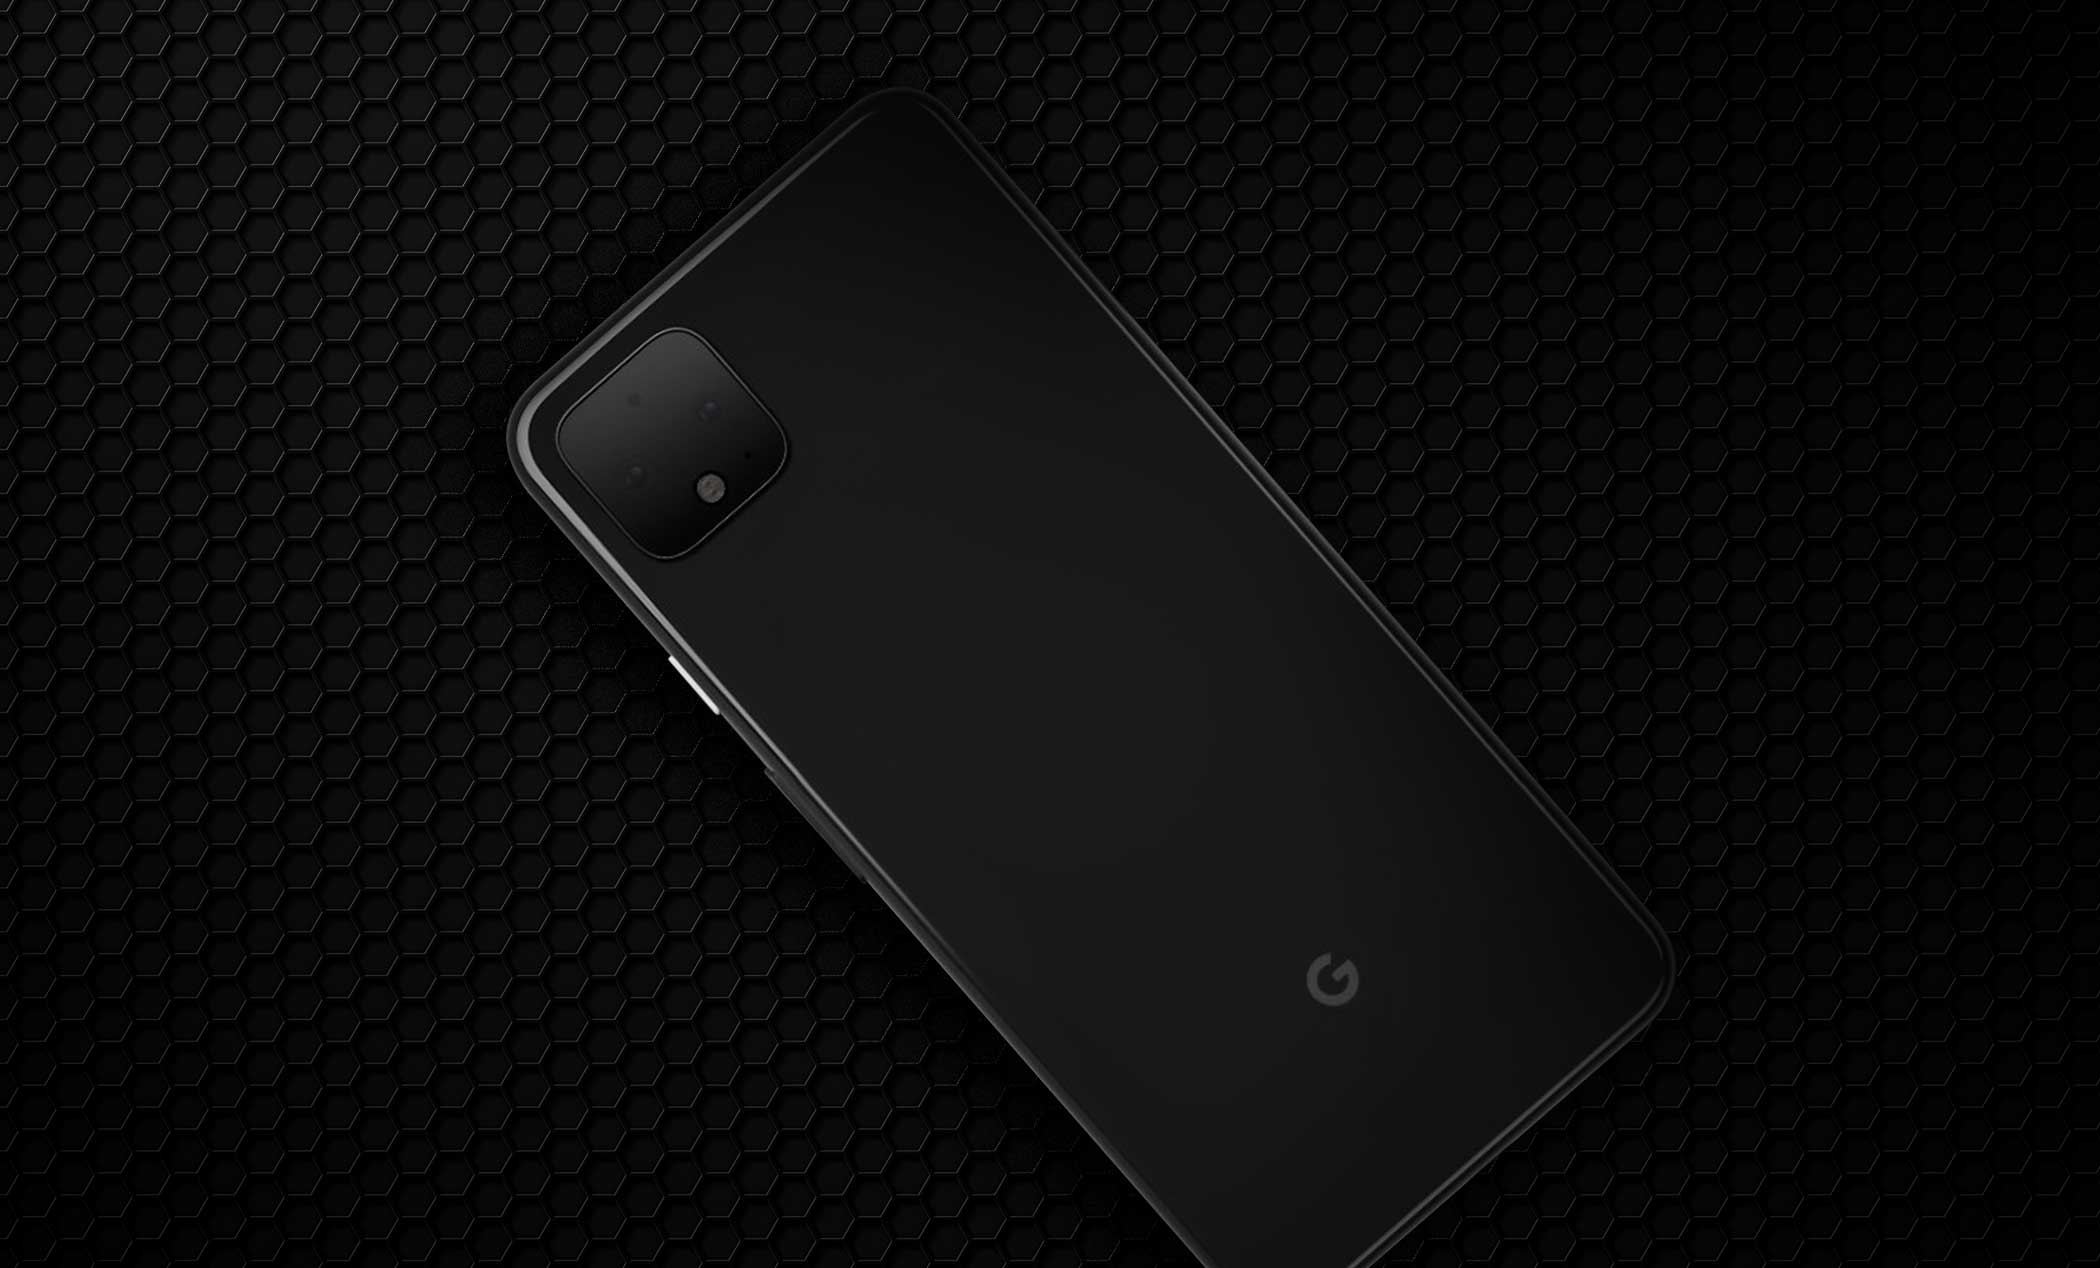 specifications of the pixel 4 and pixel 4xl leaked 90hz smoo 1jhs